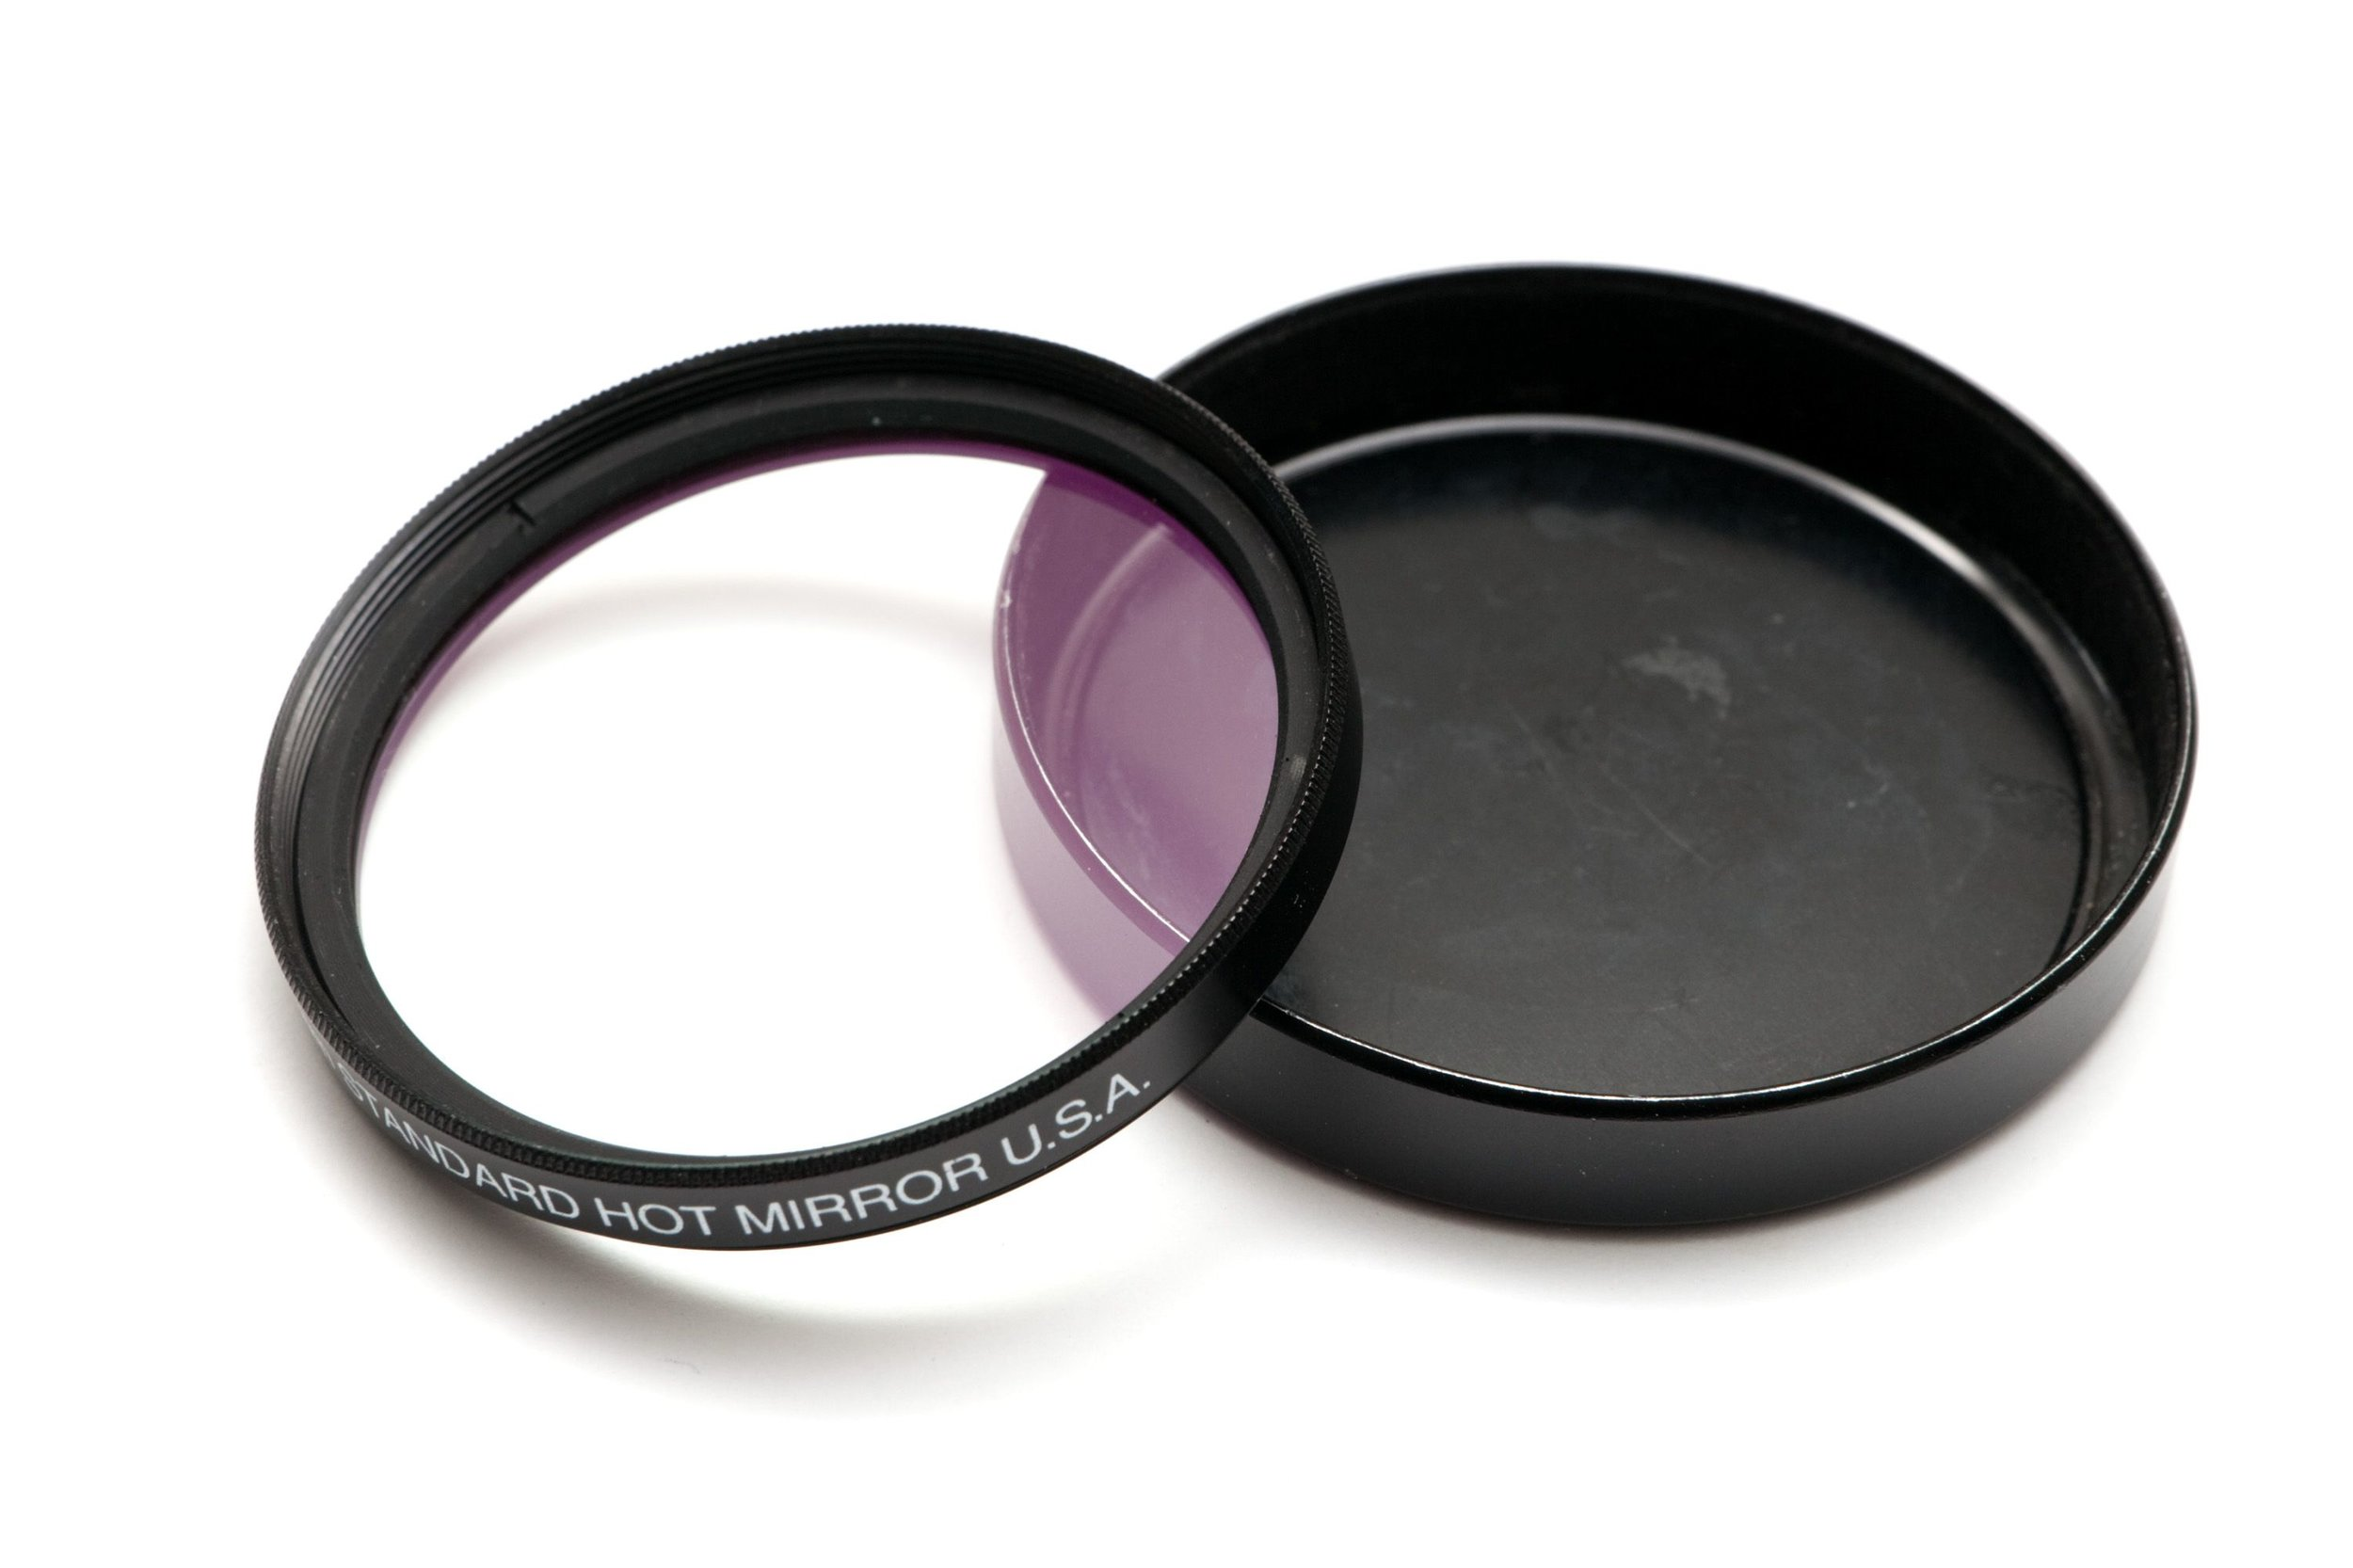 I use a UV filter on my camera for a few reasons. The first is protection. Given the ways in which I torture my equipment, a filter like this protects my lenses from getting scratched and in the event (knock on wood) that my camera falls, it will act as additional protection. The third reason I use a UV filter is that it helps give me truer colours when I shoot outdoor portraits and I personally find it helps me retain accurate skin tones.  Purchase it at:  https://amzn.to/2QCJjKD